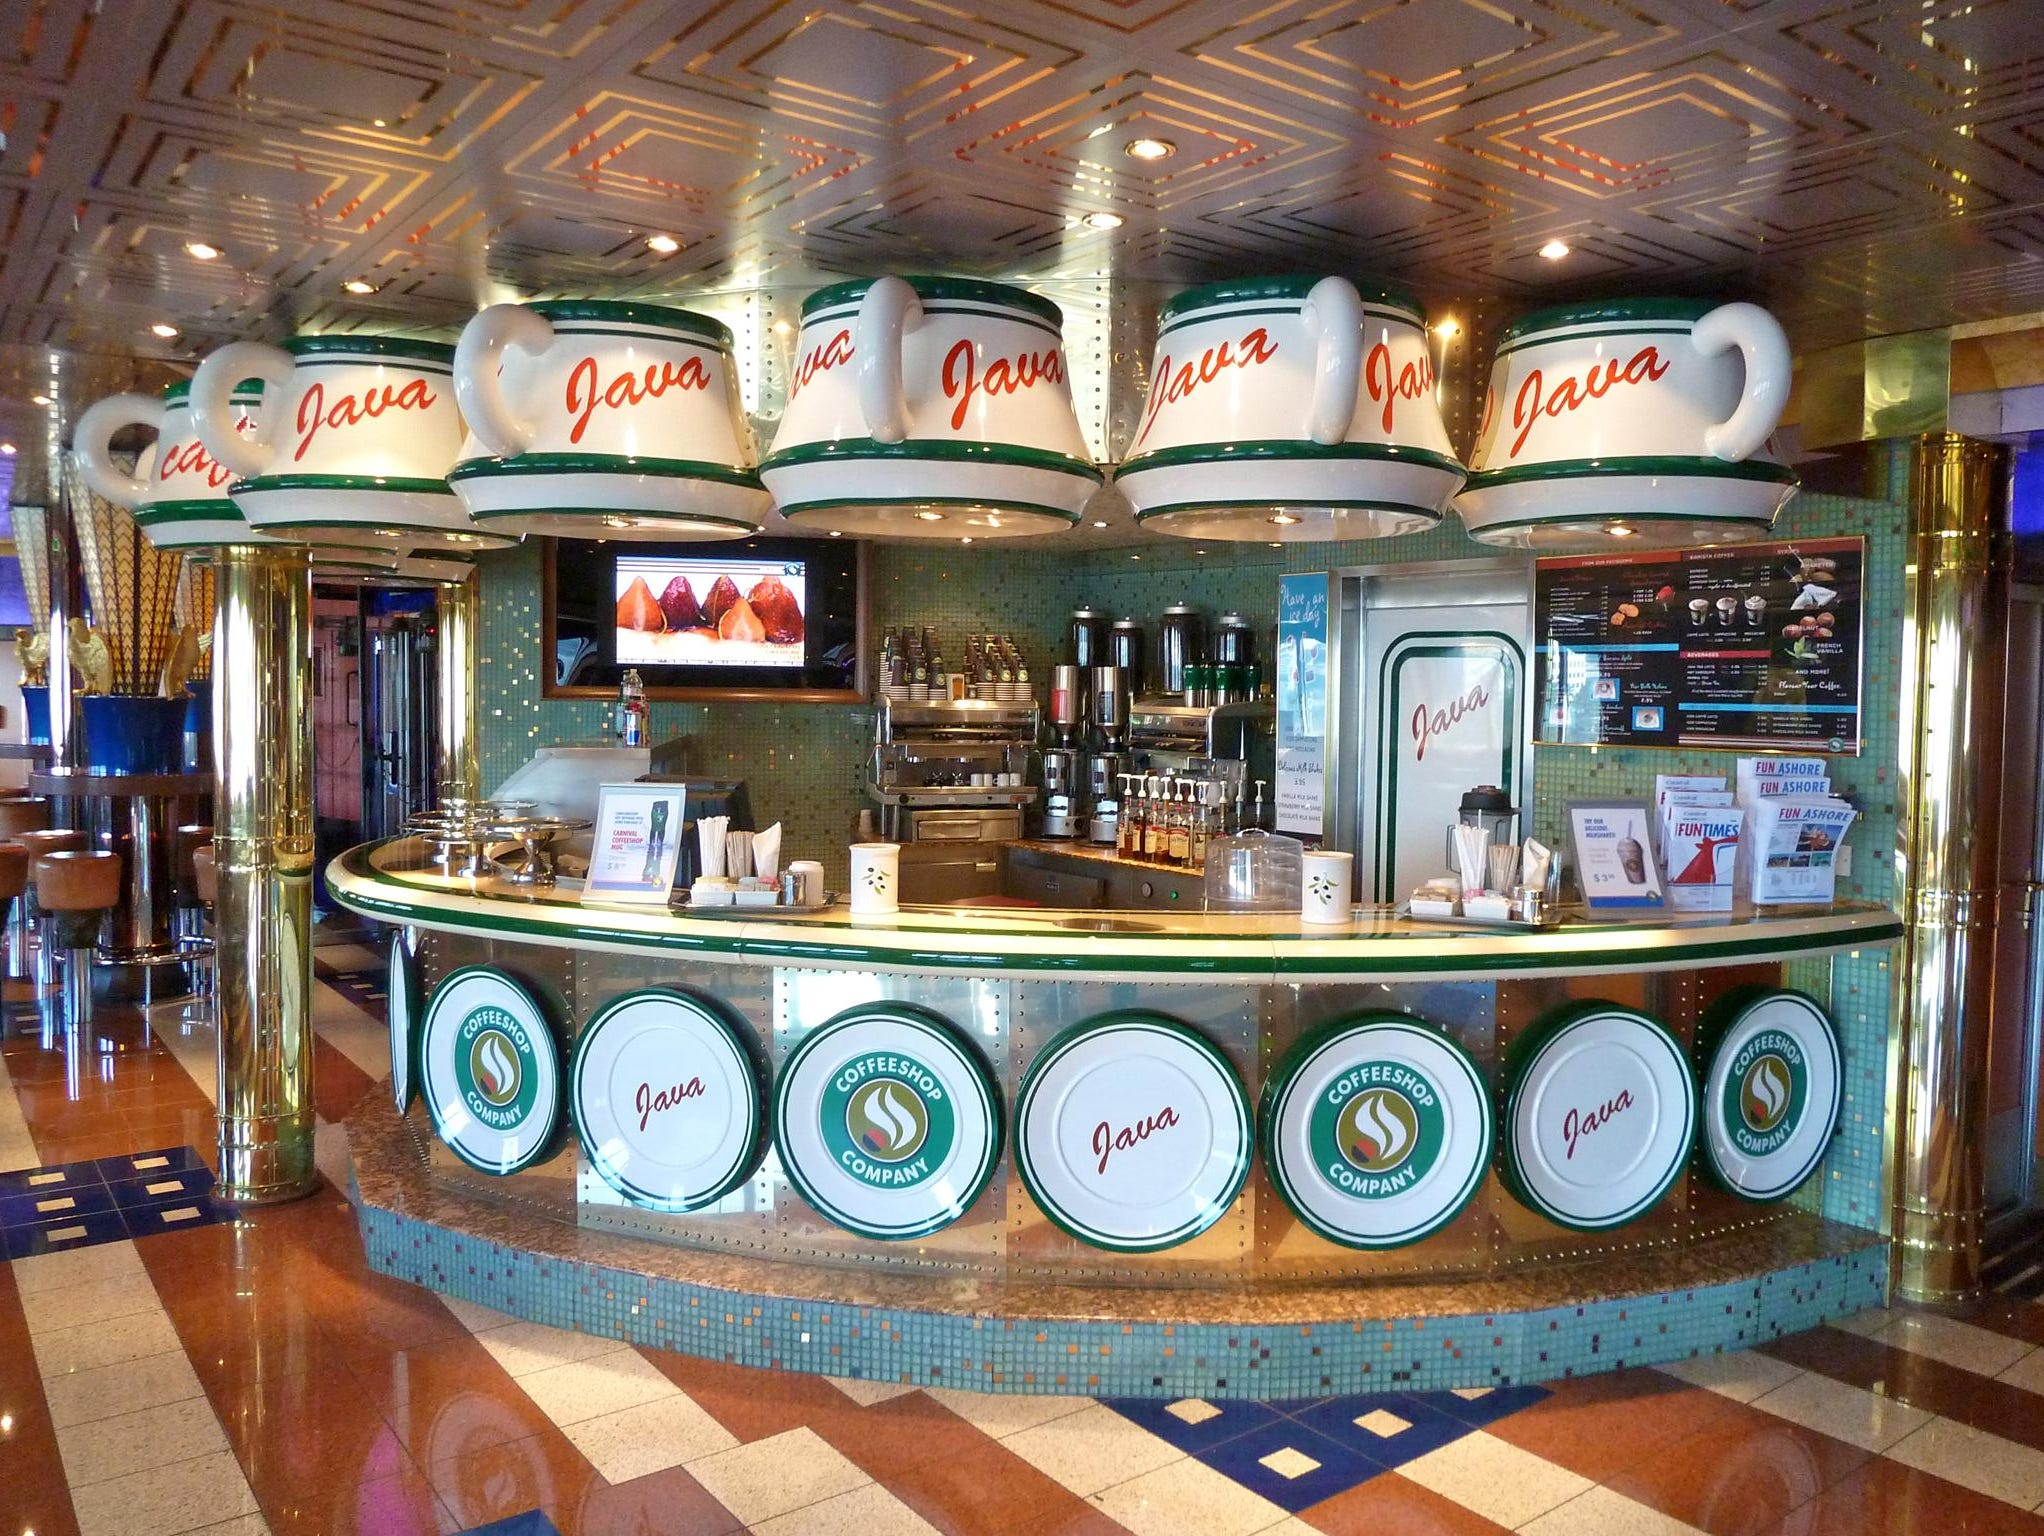 There's no mistaking the function of the Java Cafe, Carnival Valor's specialty coffee bar.